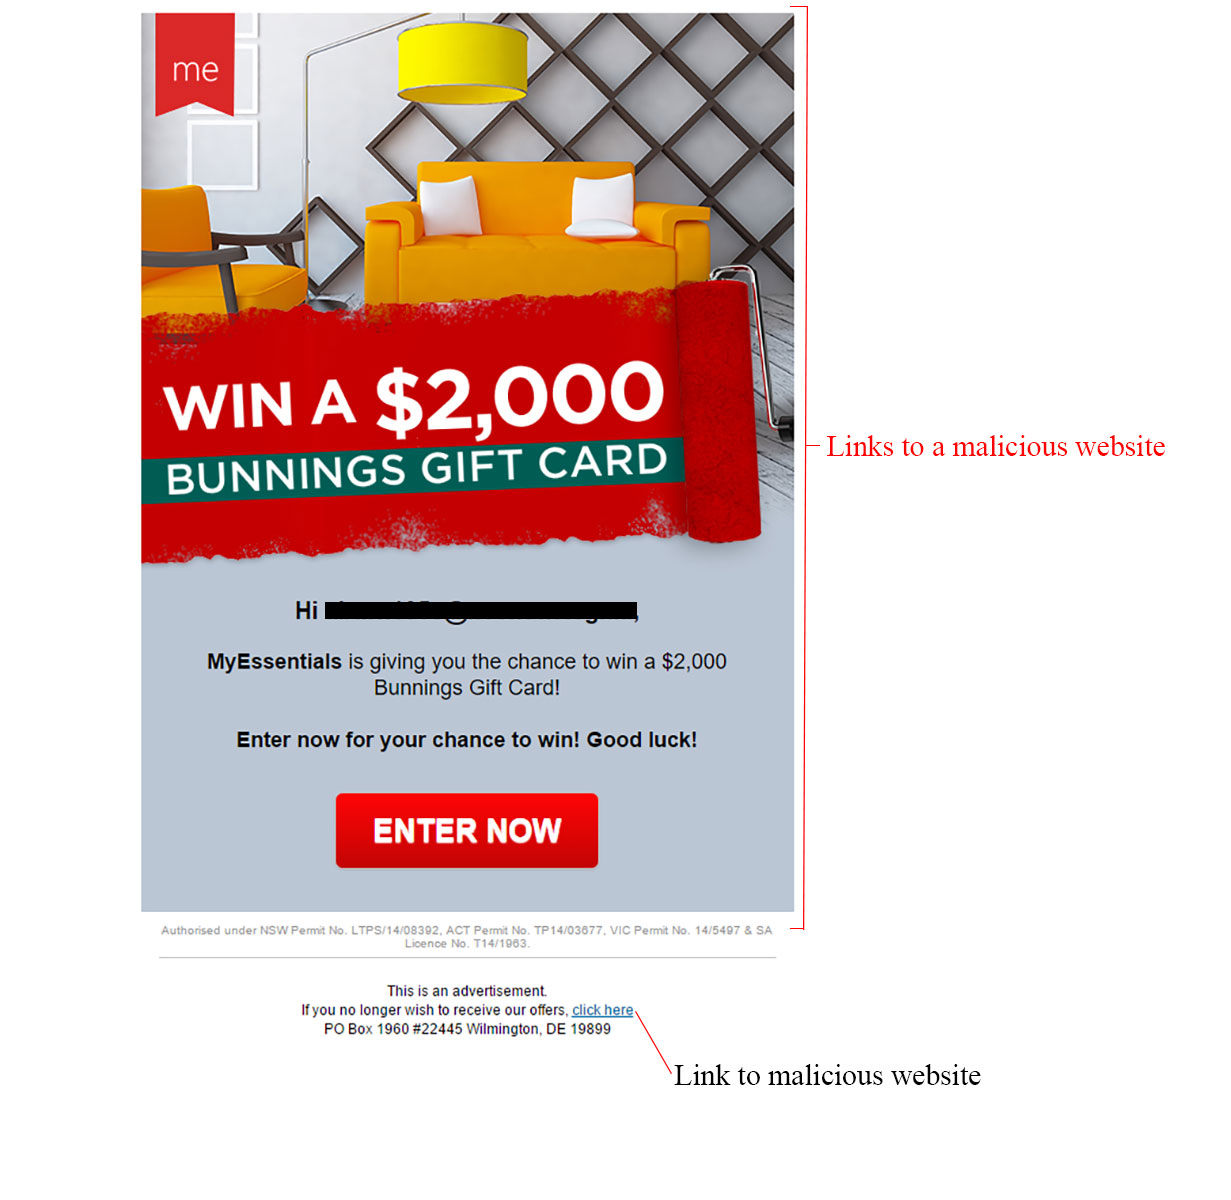 MailShark Win a Bunnings Gift Card Email Scam